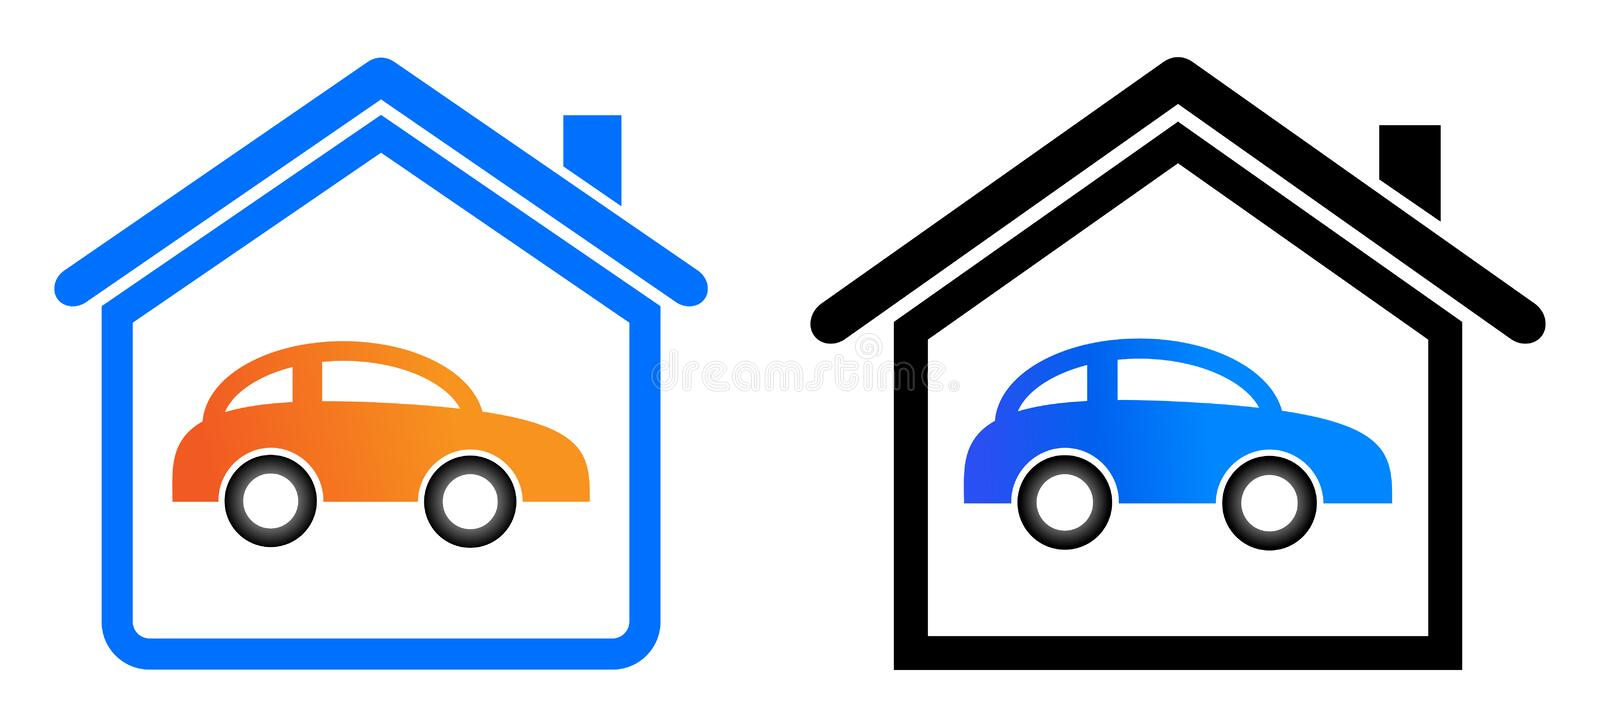 Home garage logo royalty free illustration